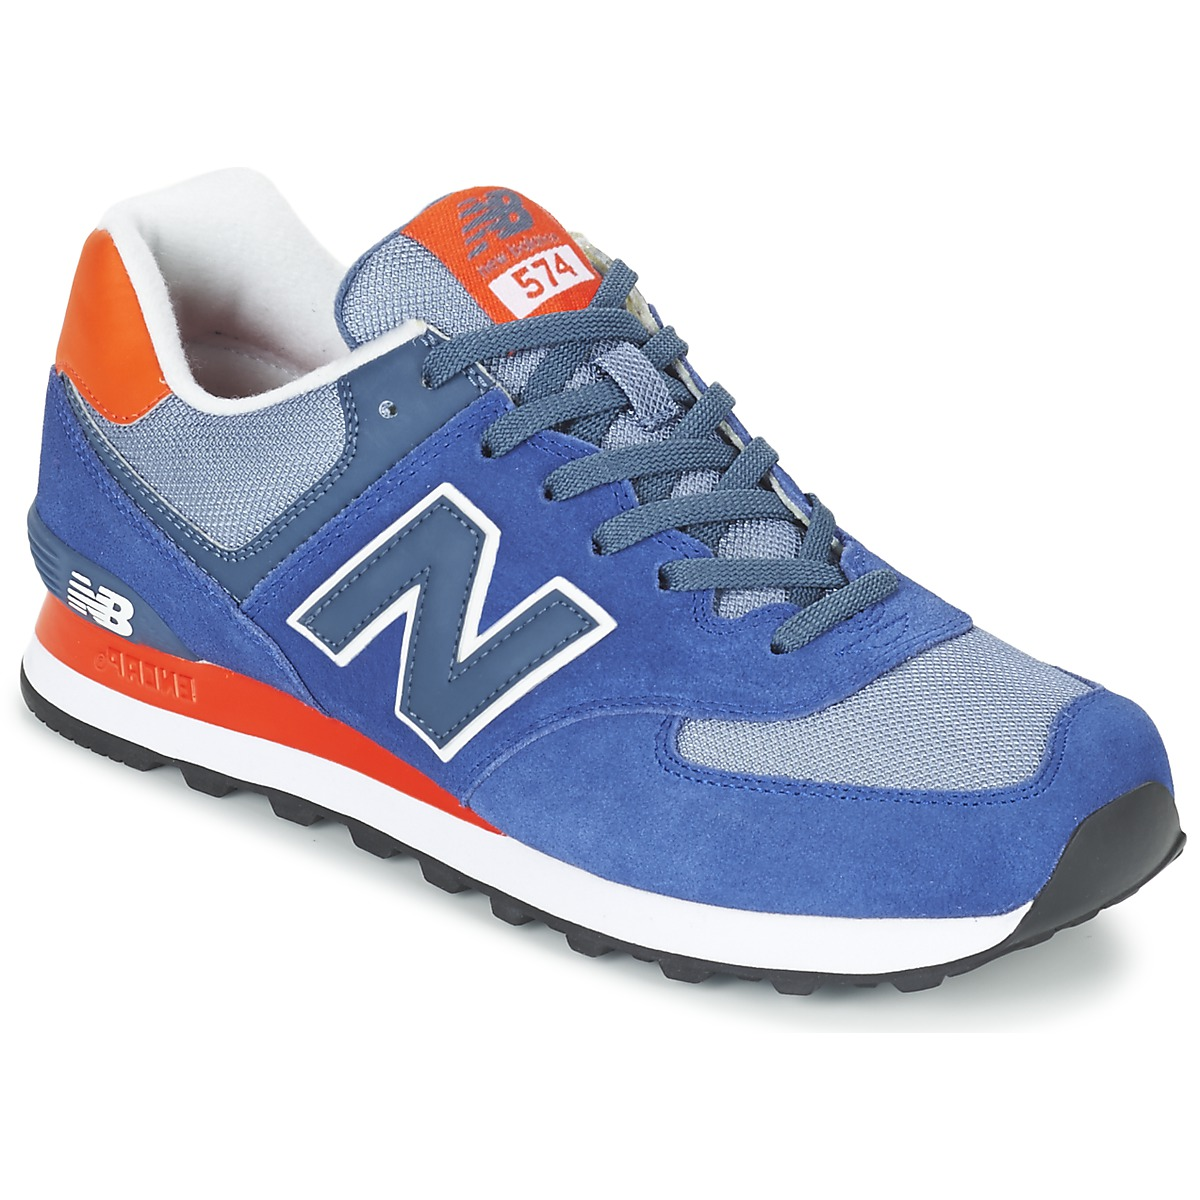 New Balance ML574 Marine / Orange